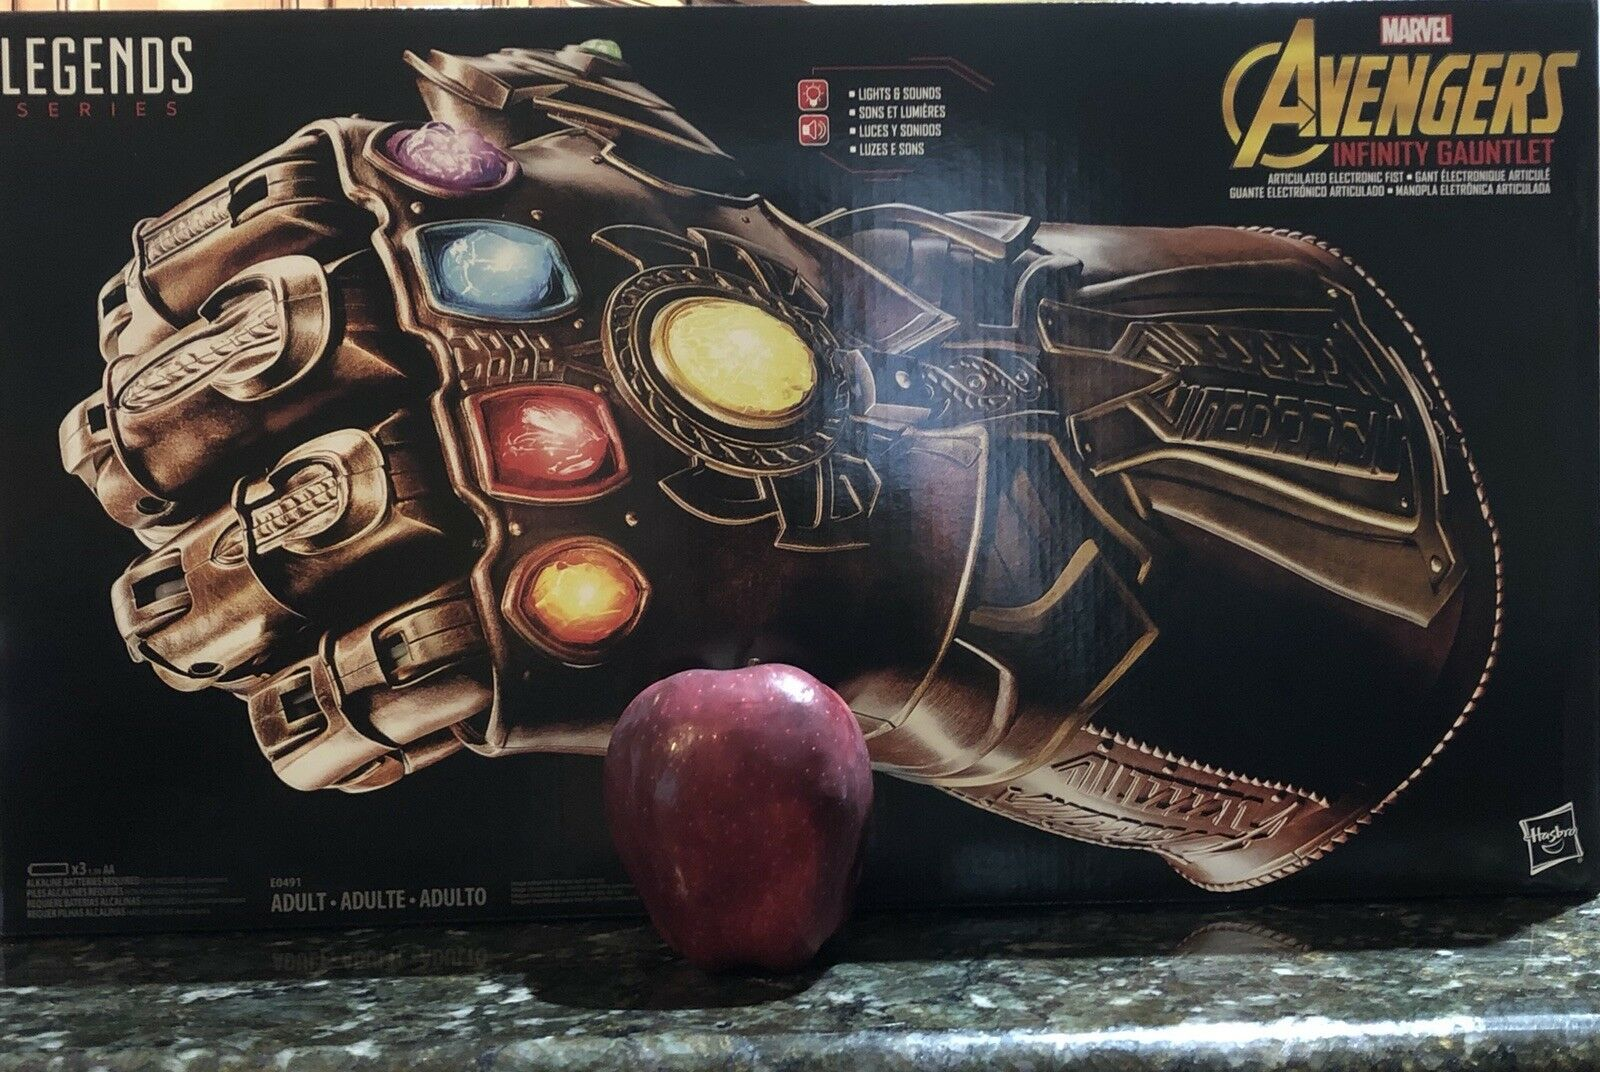 Marvel Legends Thanos INFINITY GAUNTLET Articulated Fist IN HAND Ready-to-Ship